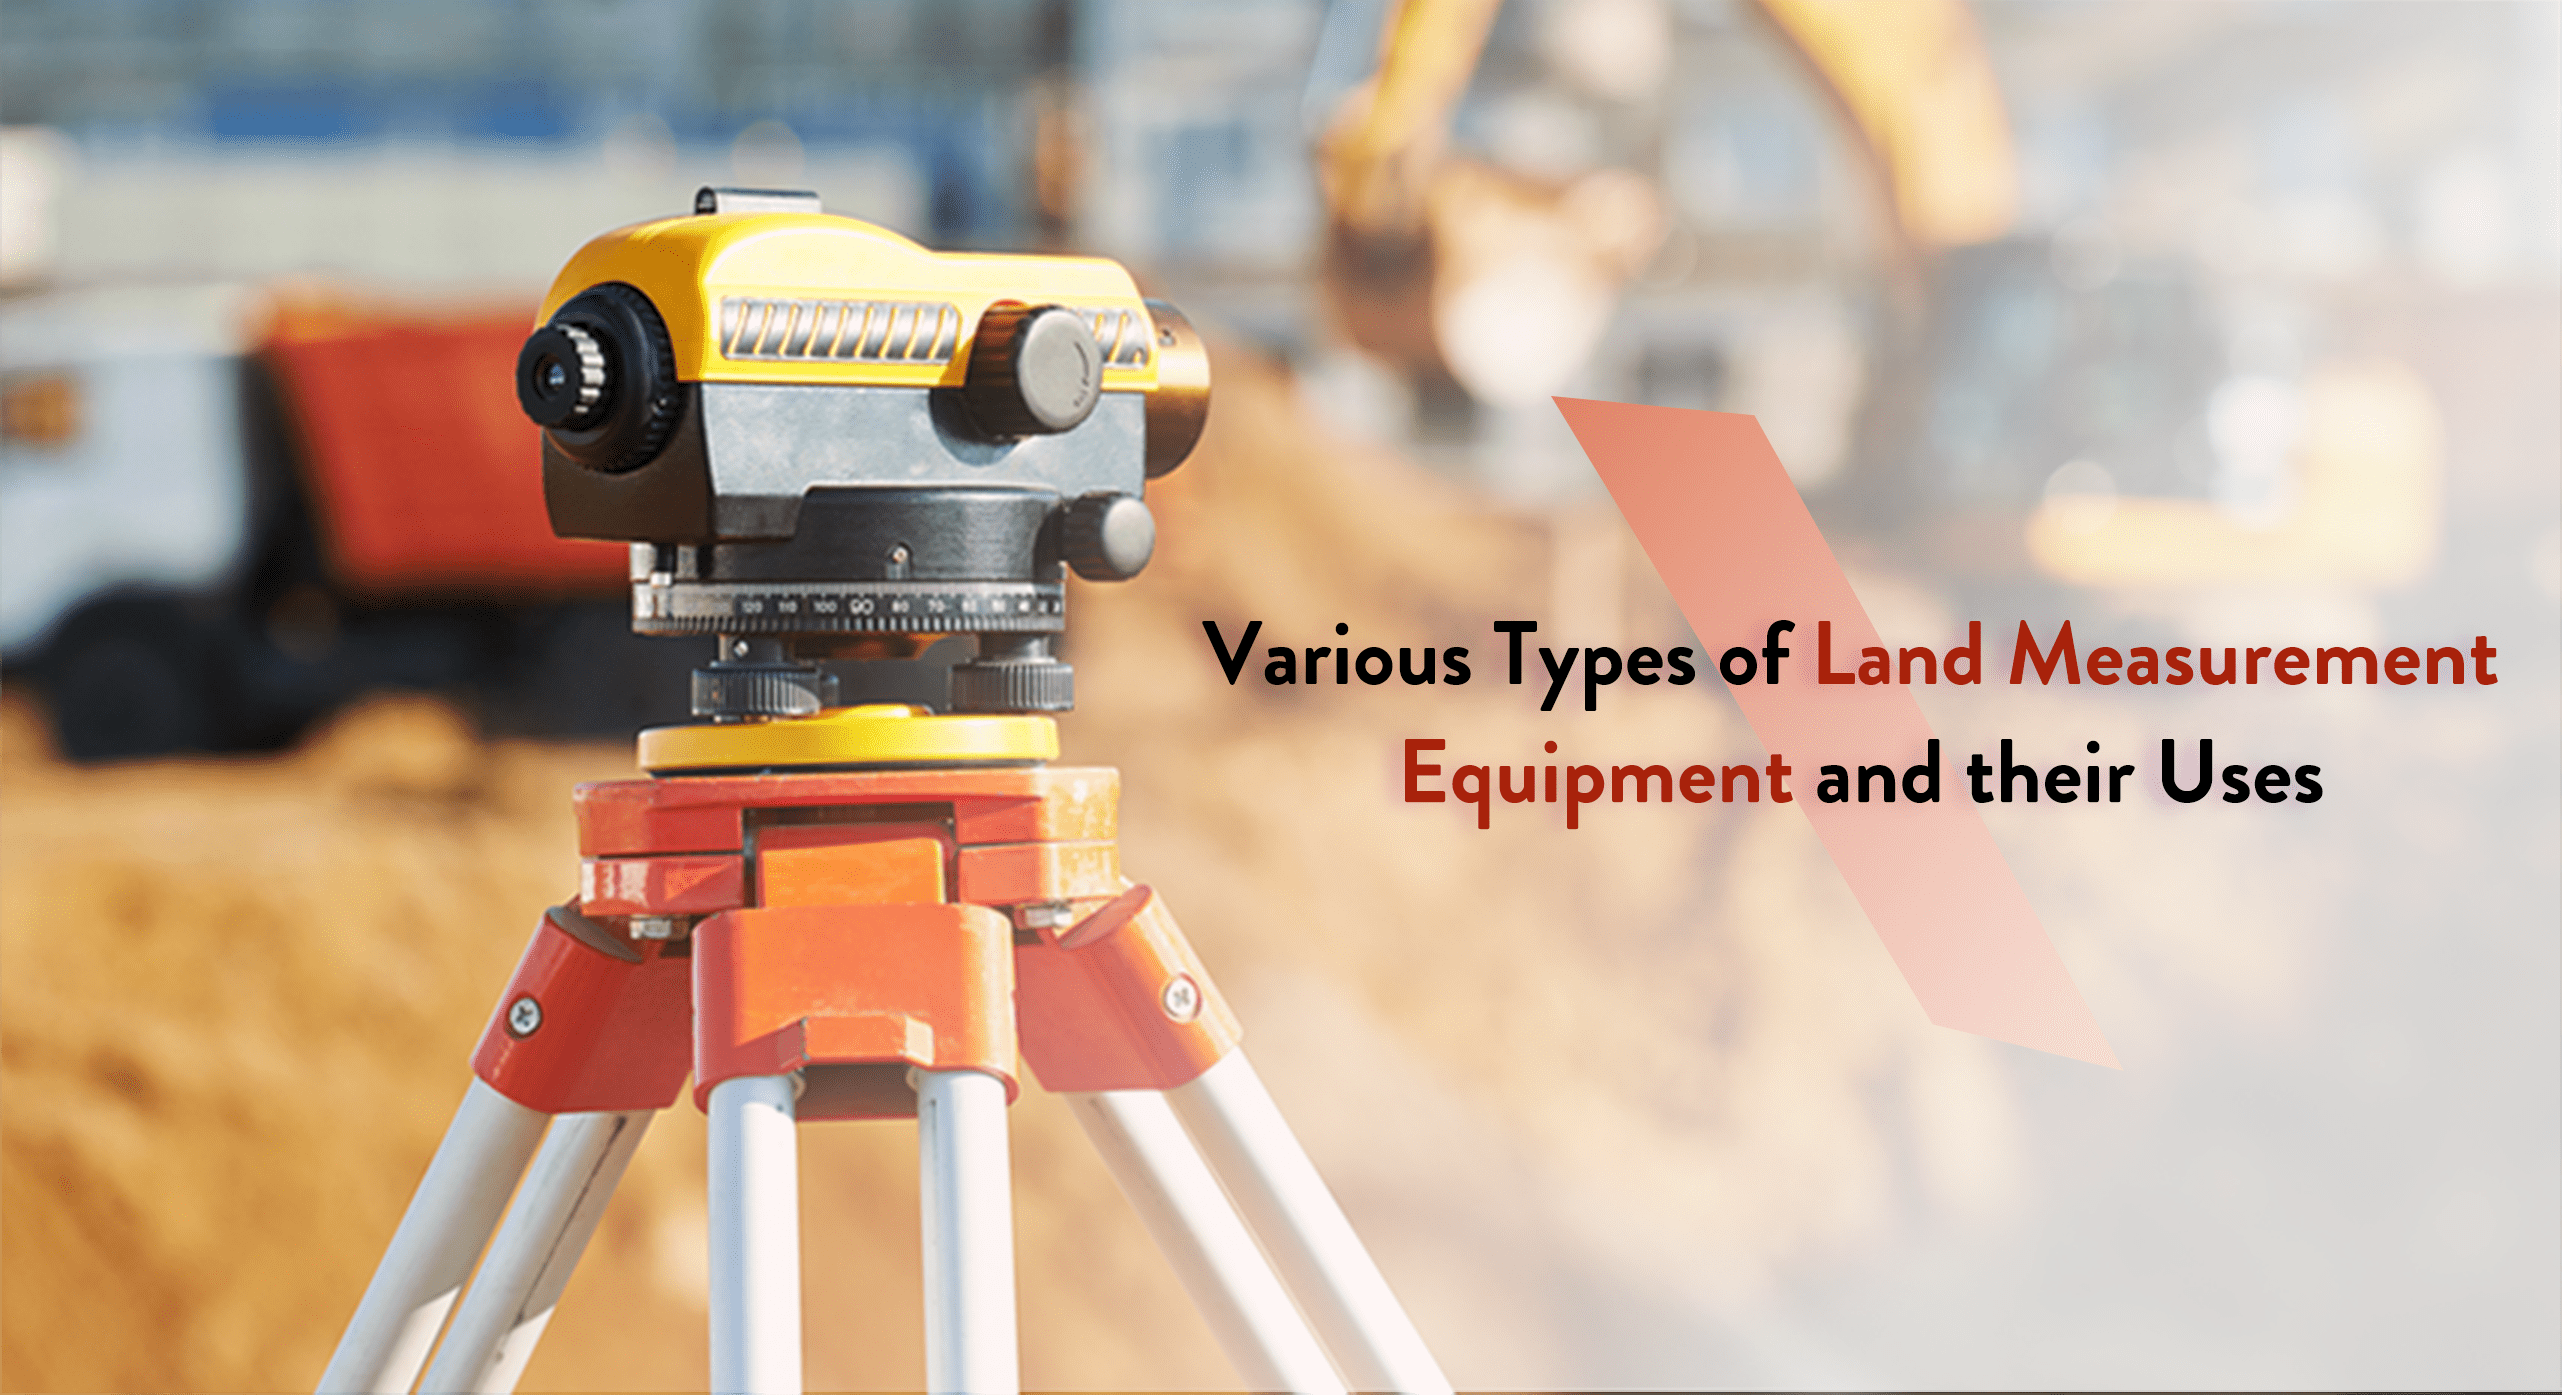 Land Measurement Equipment